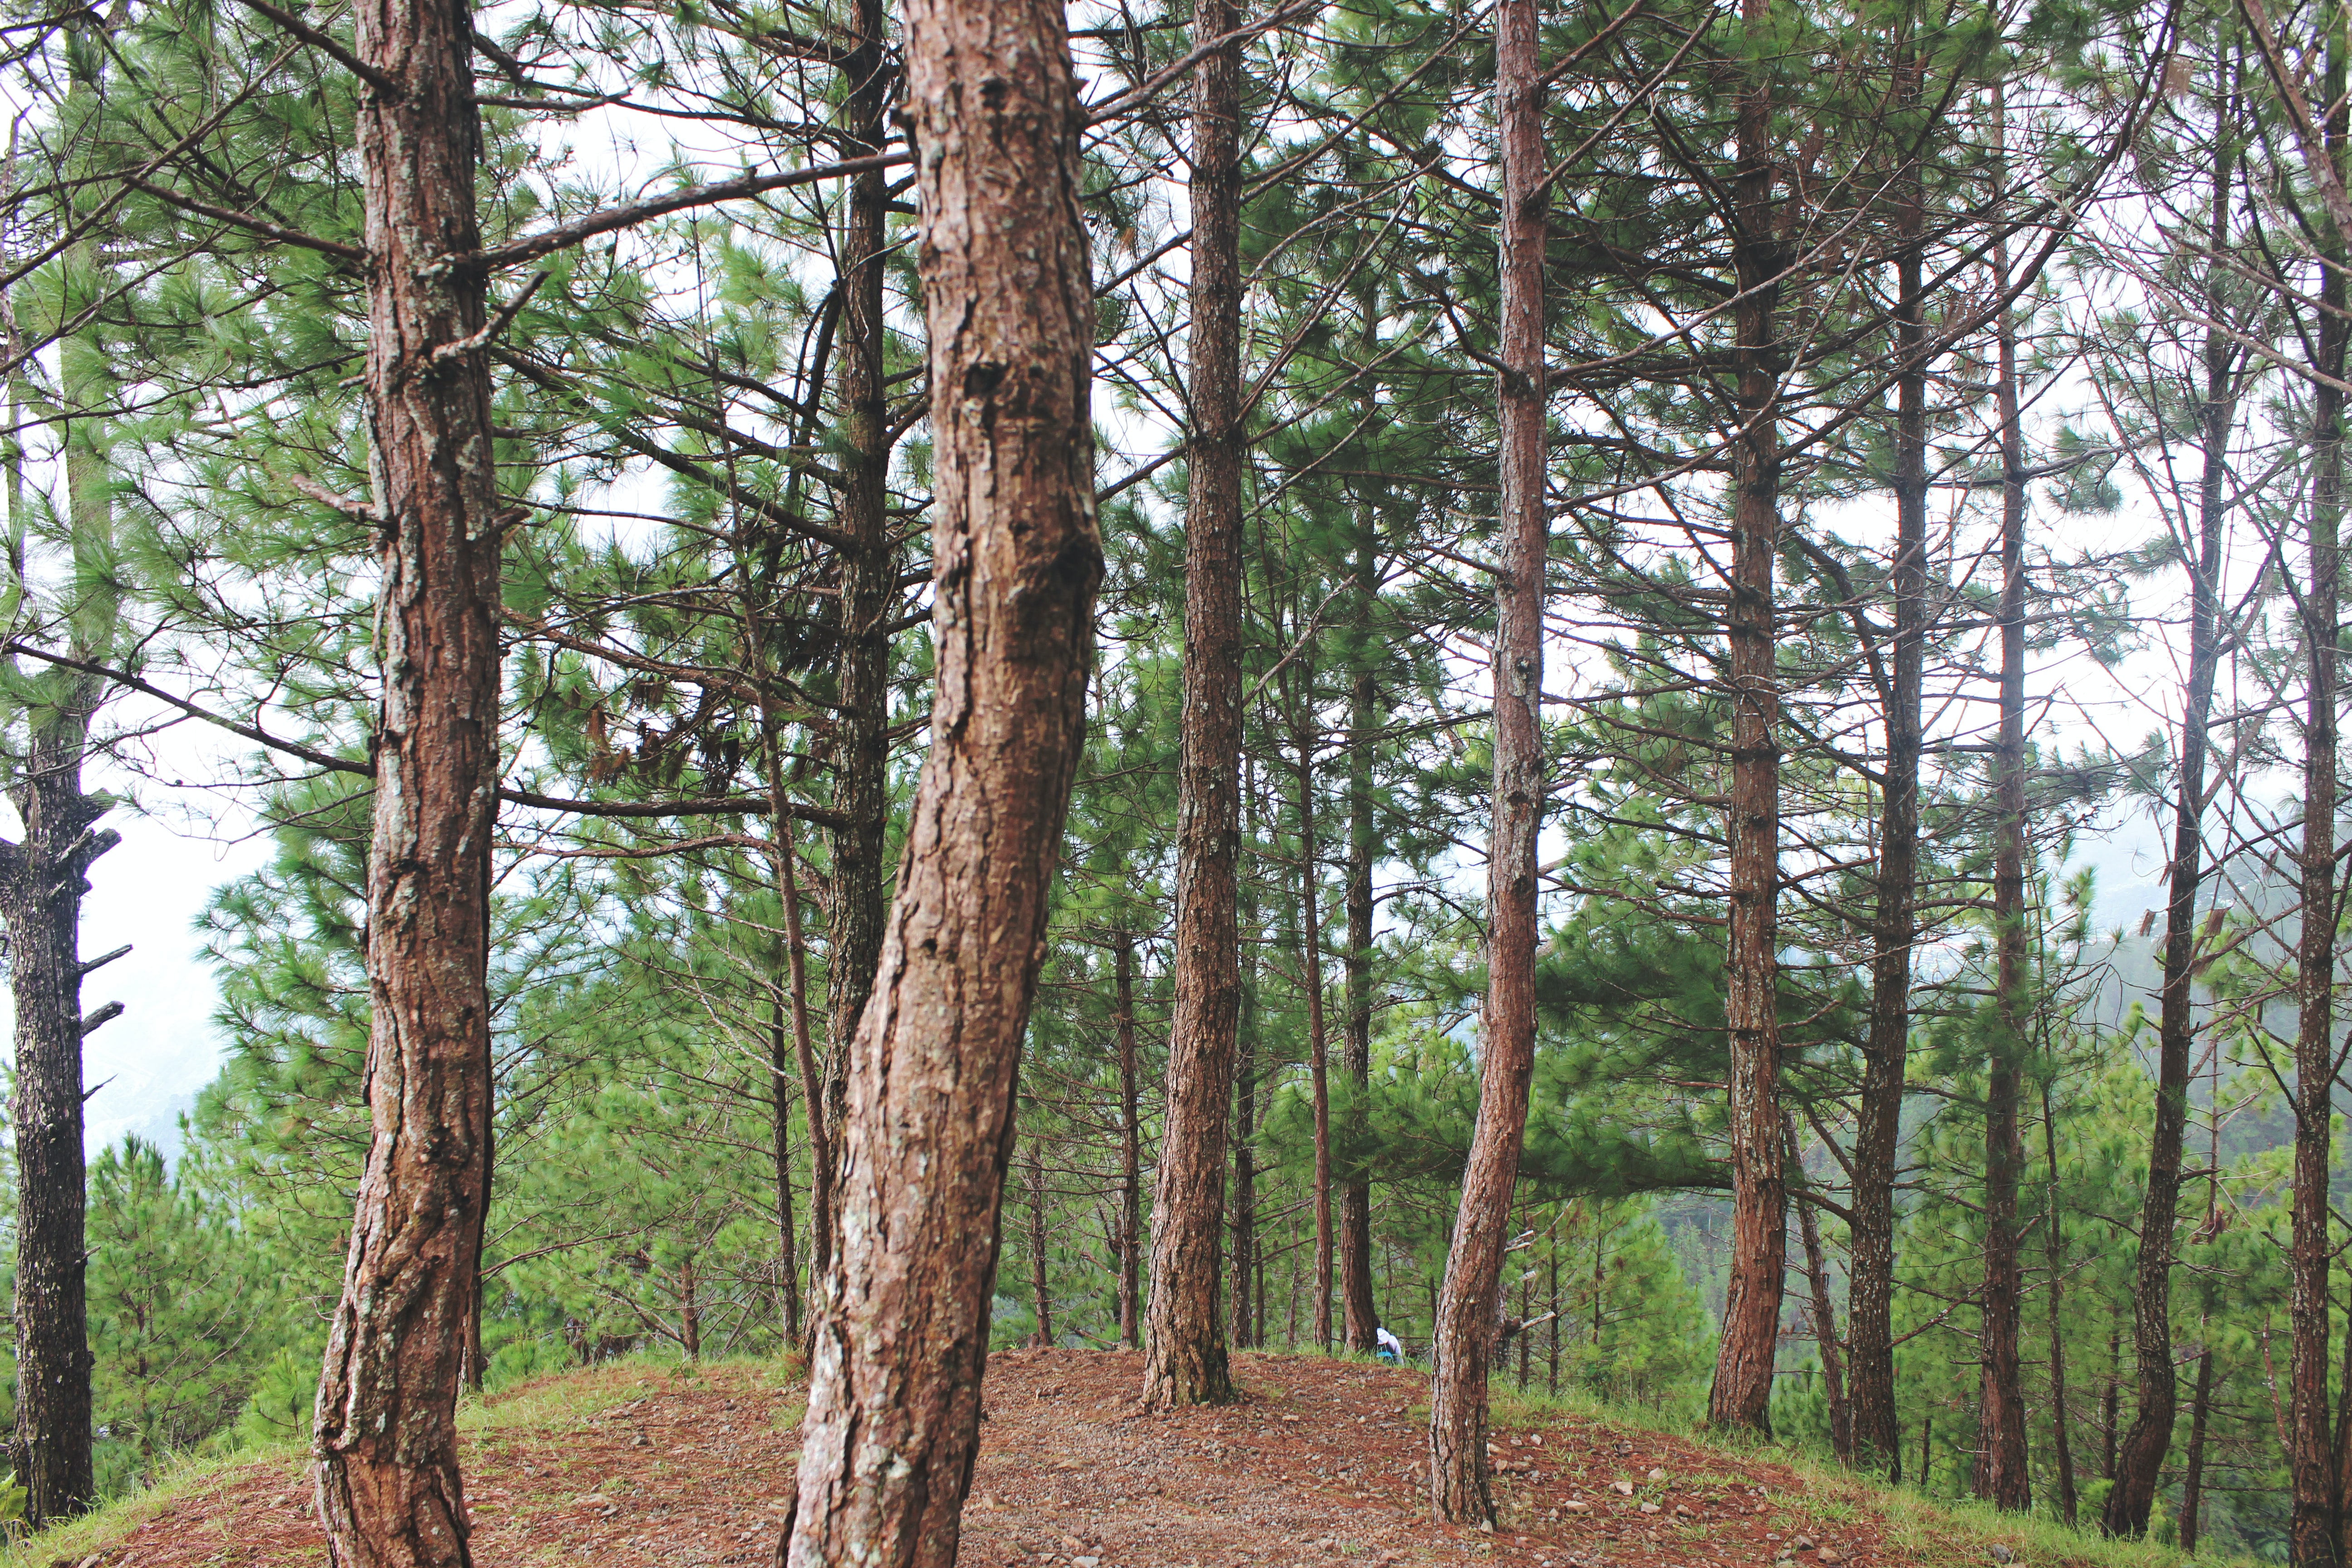 A group of evergreen trees on top of a small hill